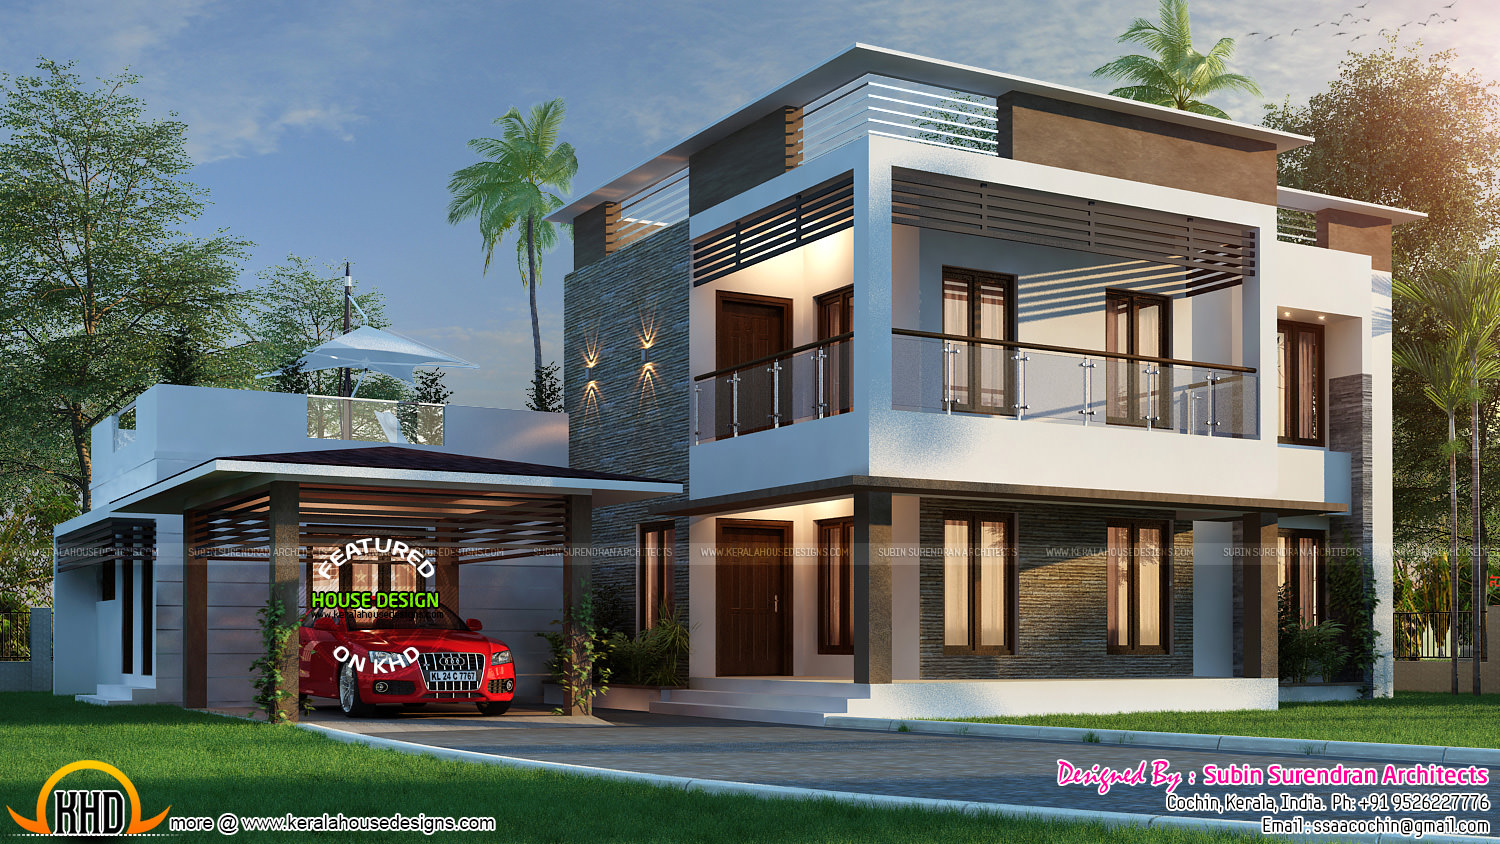 3116 sq-ft home with 4 BHK - Kerala home design and floor ...